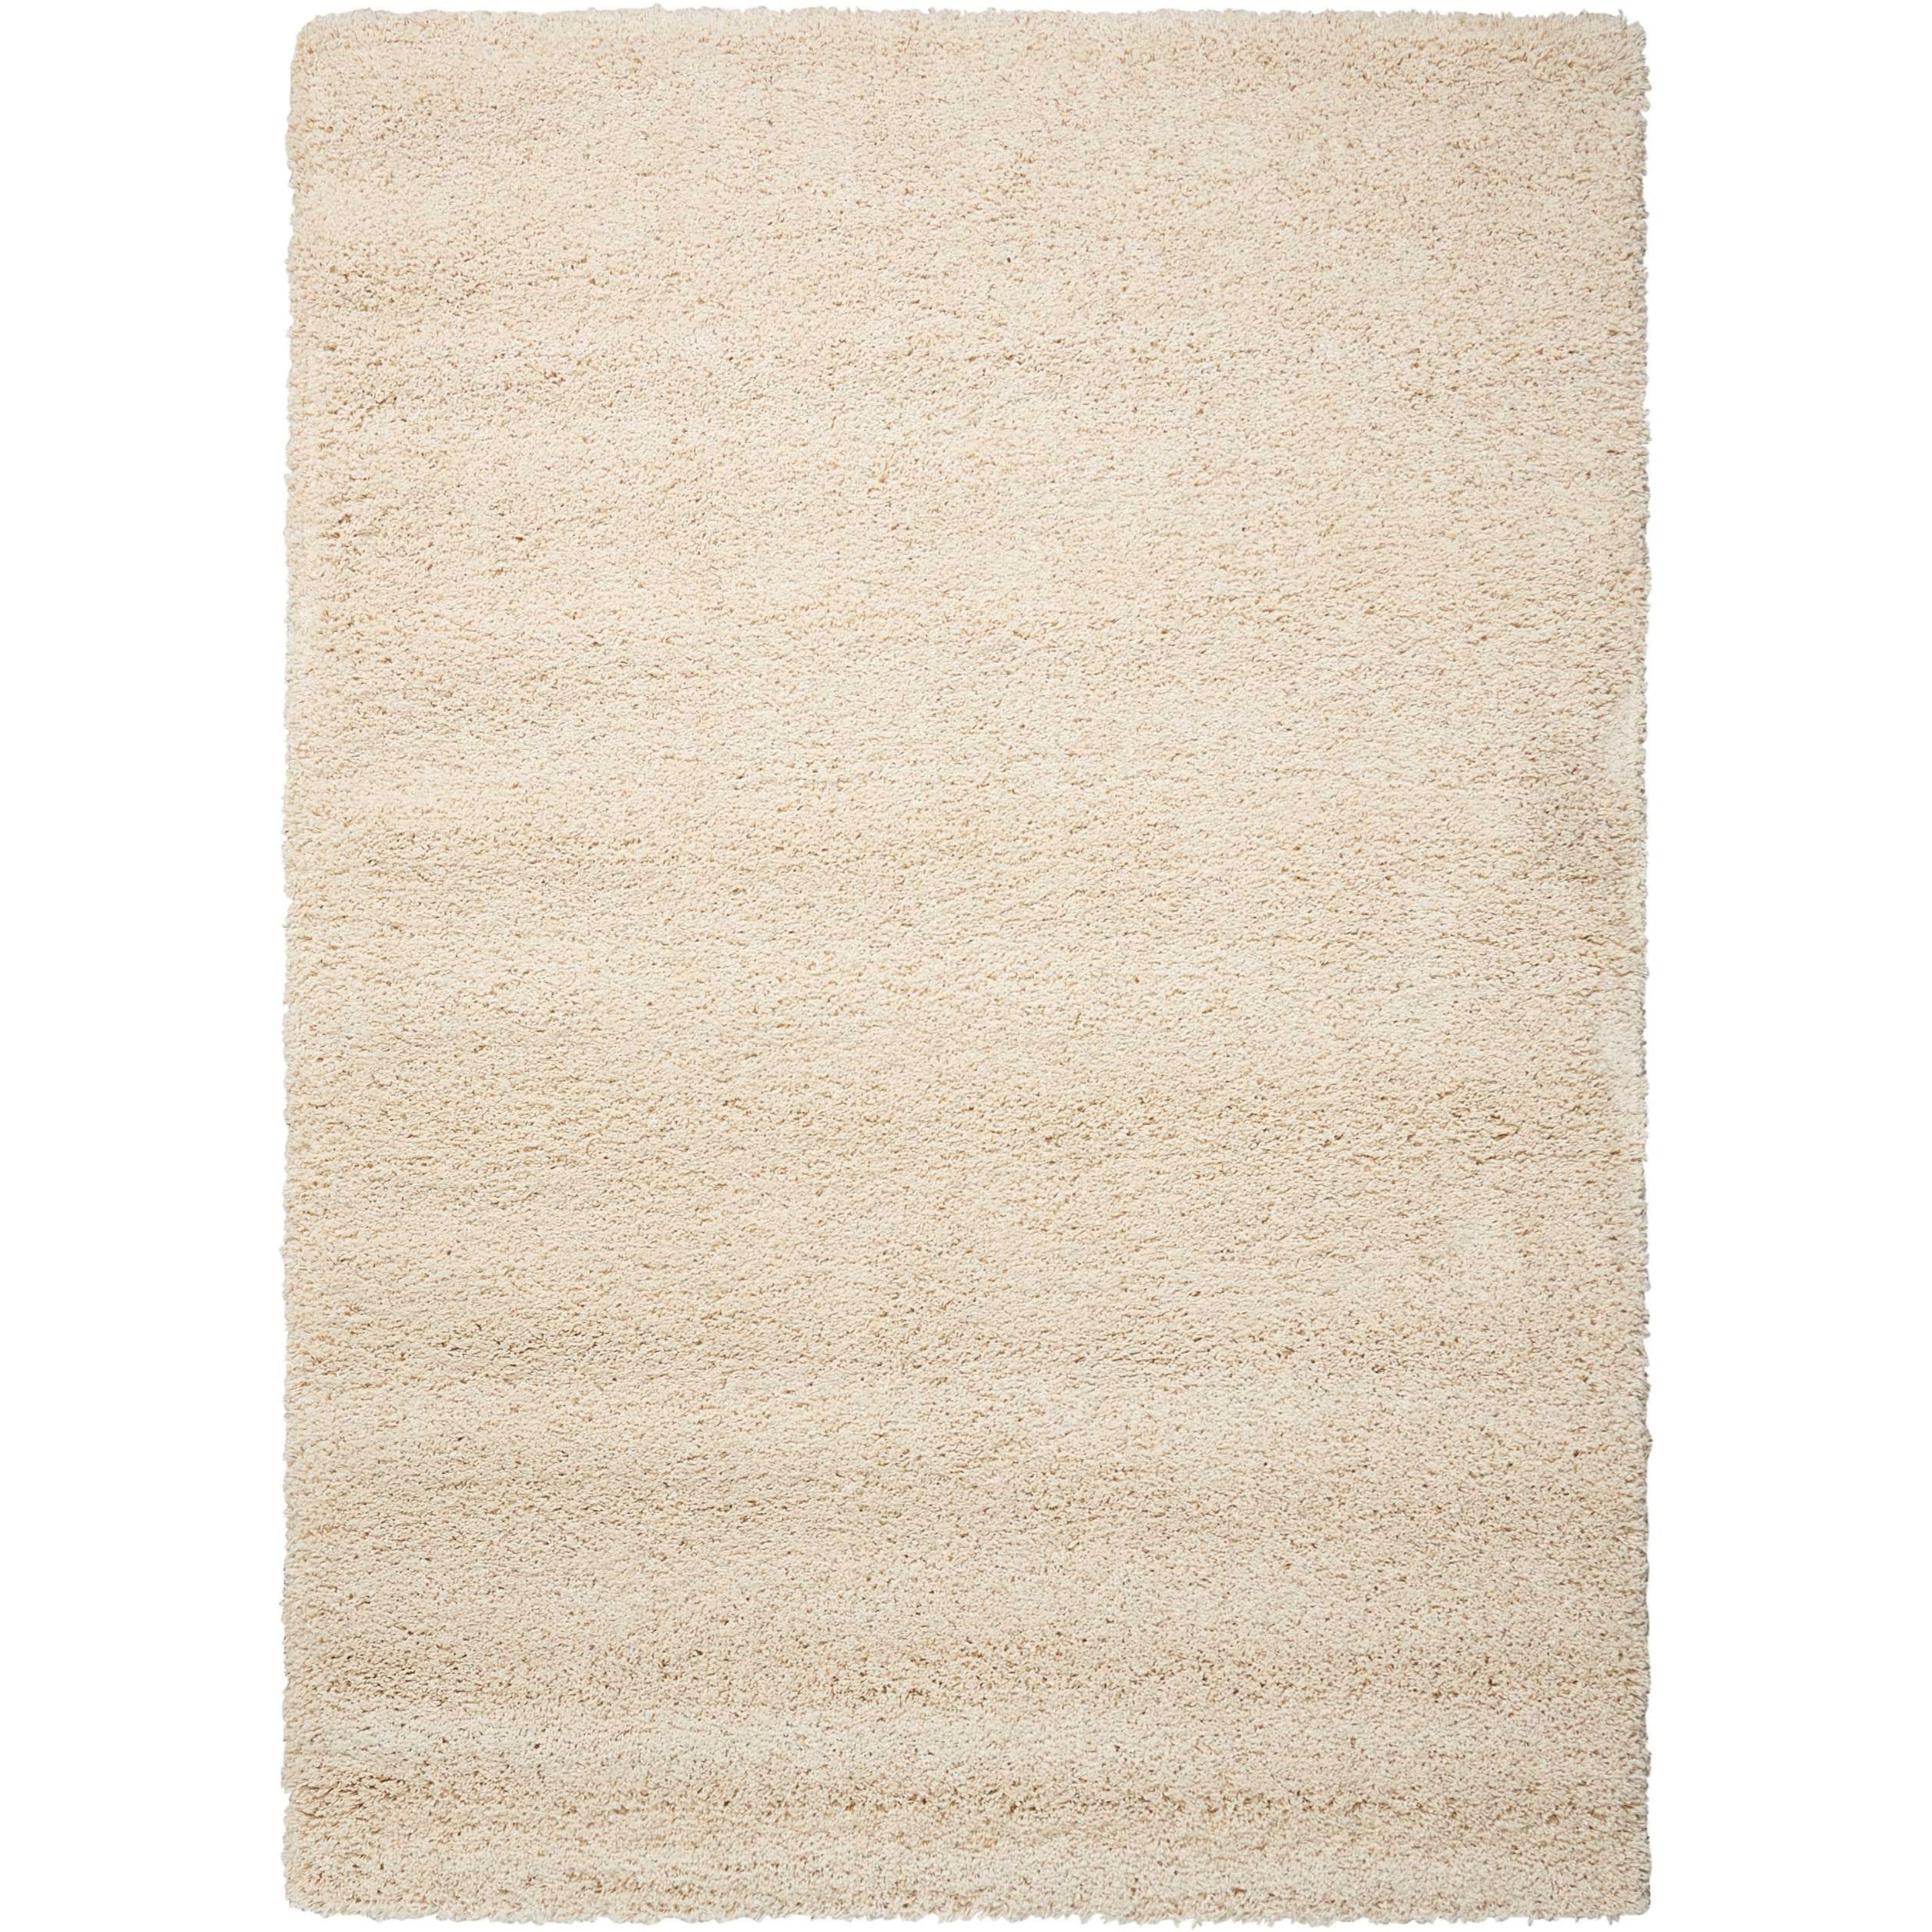 Amore Amore AMOR1 Beige 4'x6' Area Rug by Nourison at Home Collections Furniture